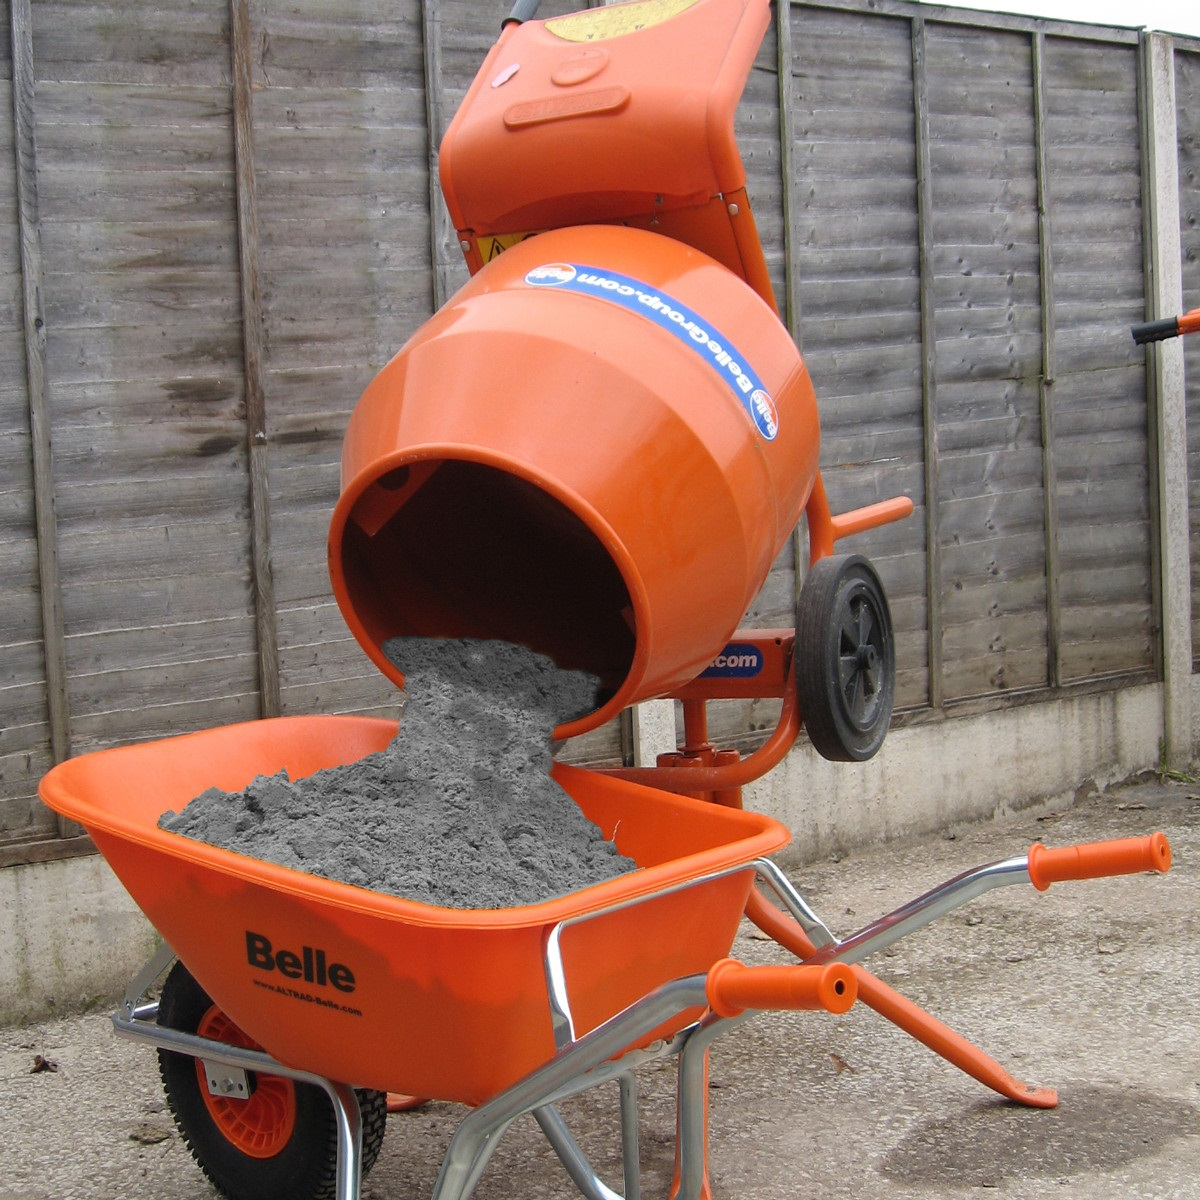 Used Small Cement Mixers : Belle minimix petrol cement mixer honda engine ebay